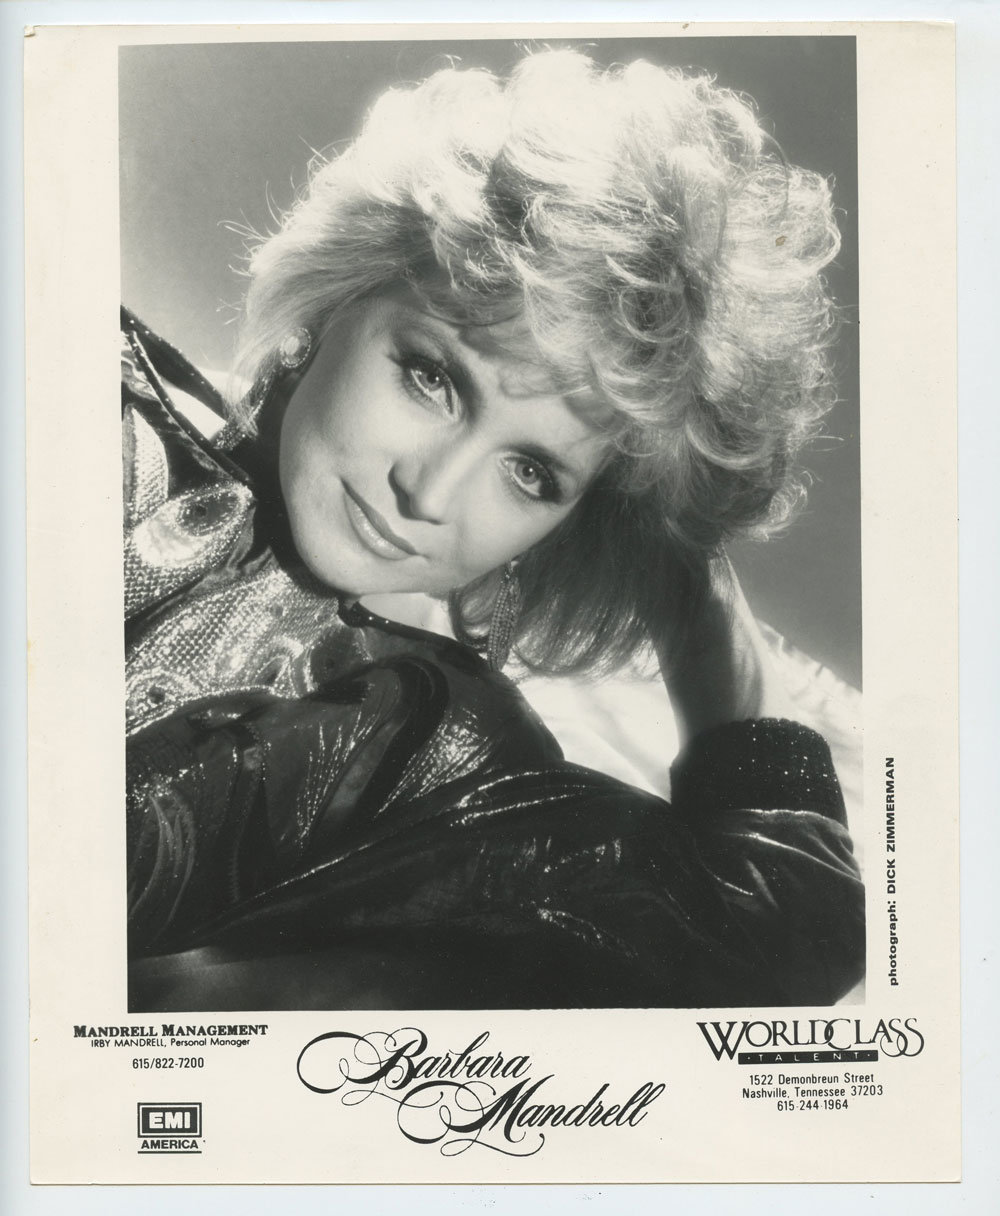 Barbara Mandrell Photo 1980s Publicity Promo EMI Records